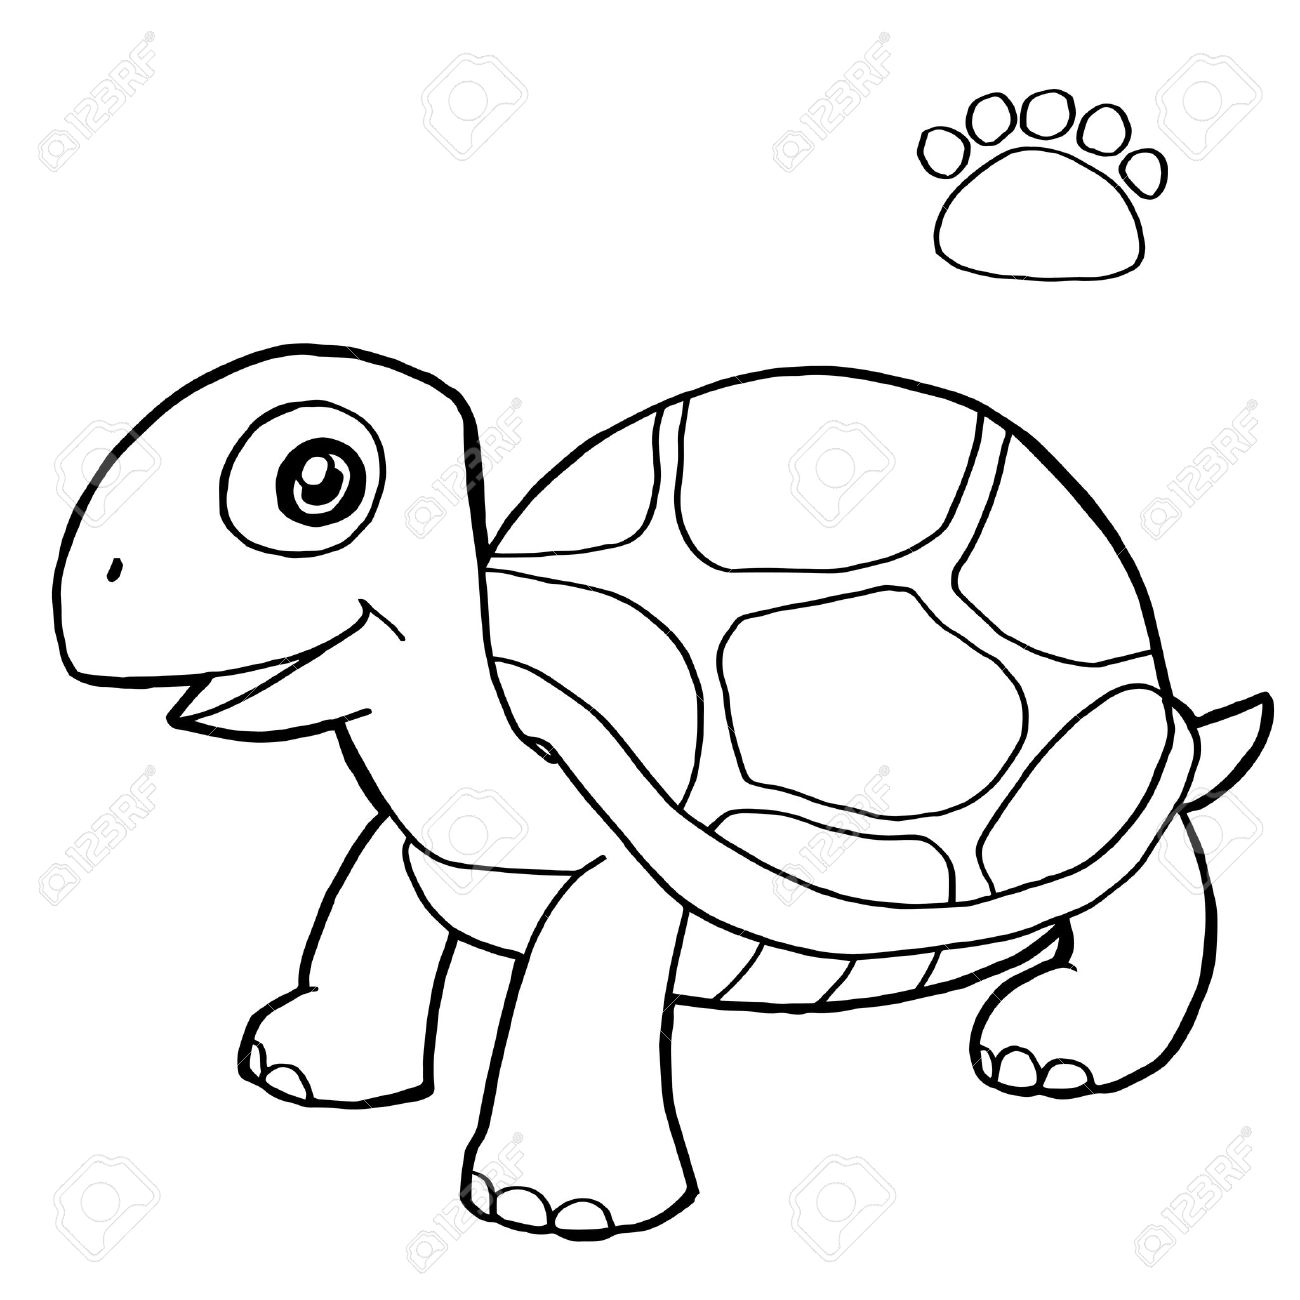 Paw Print With Turtle Coloring Pages Vector Royalty Free Cliparts ...